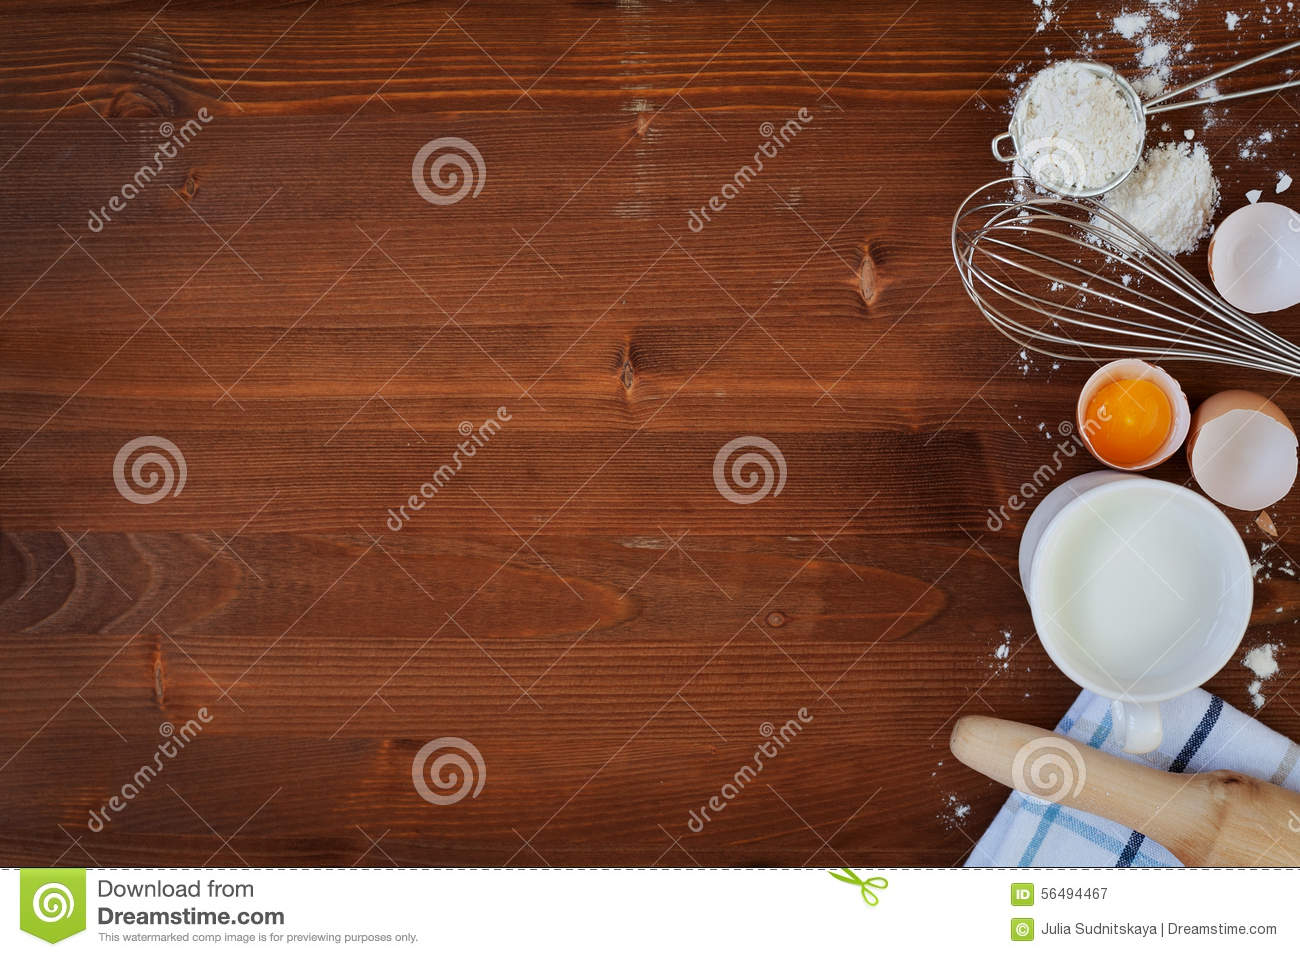 Ingredients for baking dough including flour, eggs, milk, whisk and rolling pin on wooden rustic background